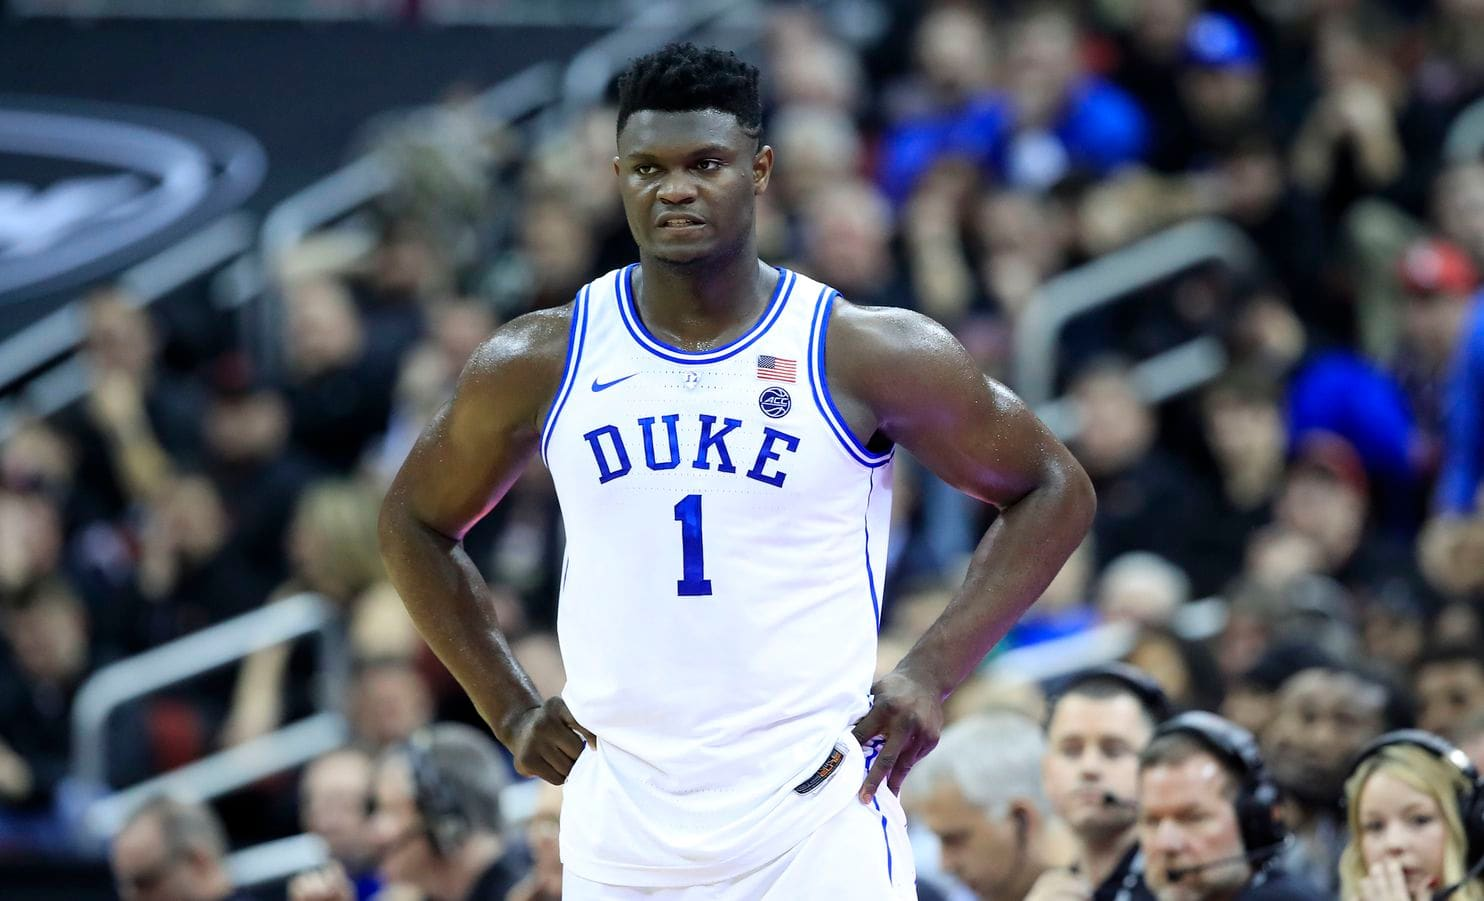 Nba draft – Zion Williamson